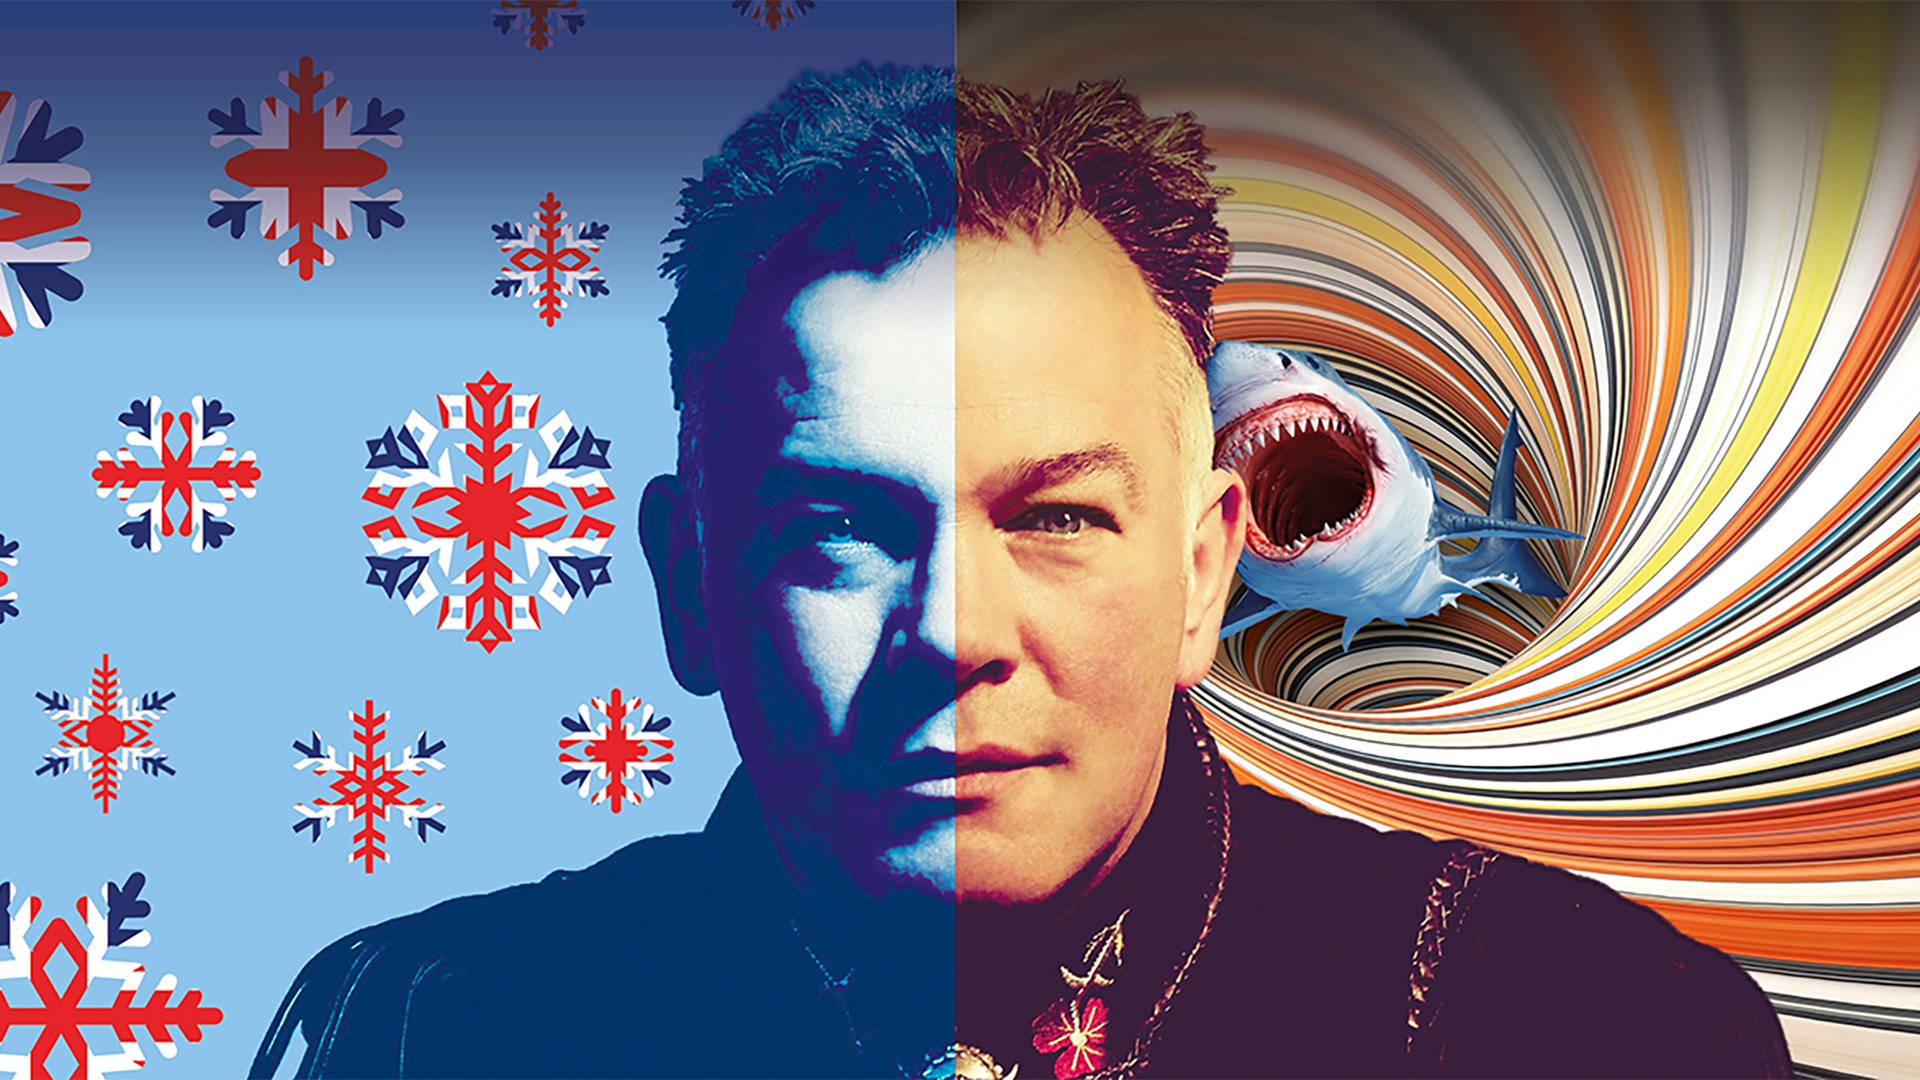 Stewart Lee promotional image: The man himself in the centre, the left side coloured blue, with British flag patterned snowflakes, the right in orange and yellow tones, behind him a tornado swirl with a shark jumping out of the centre